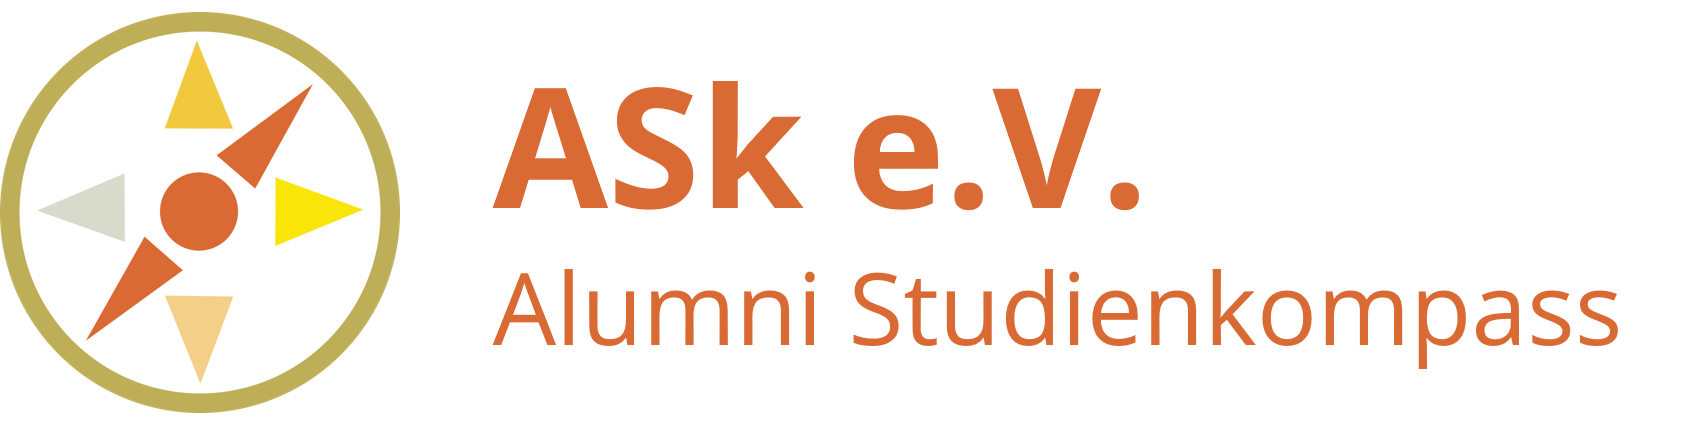 Alumni Studienkompass